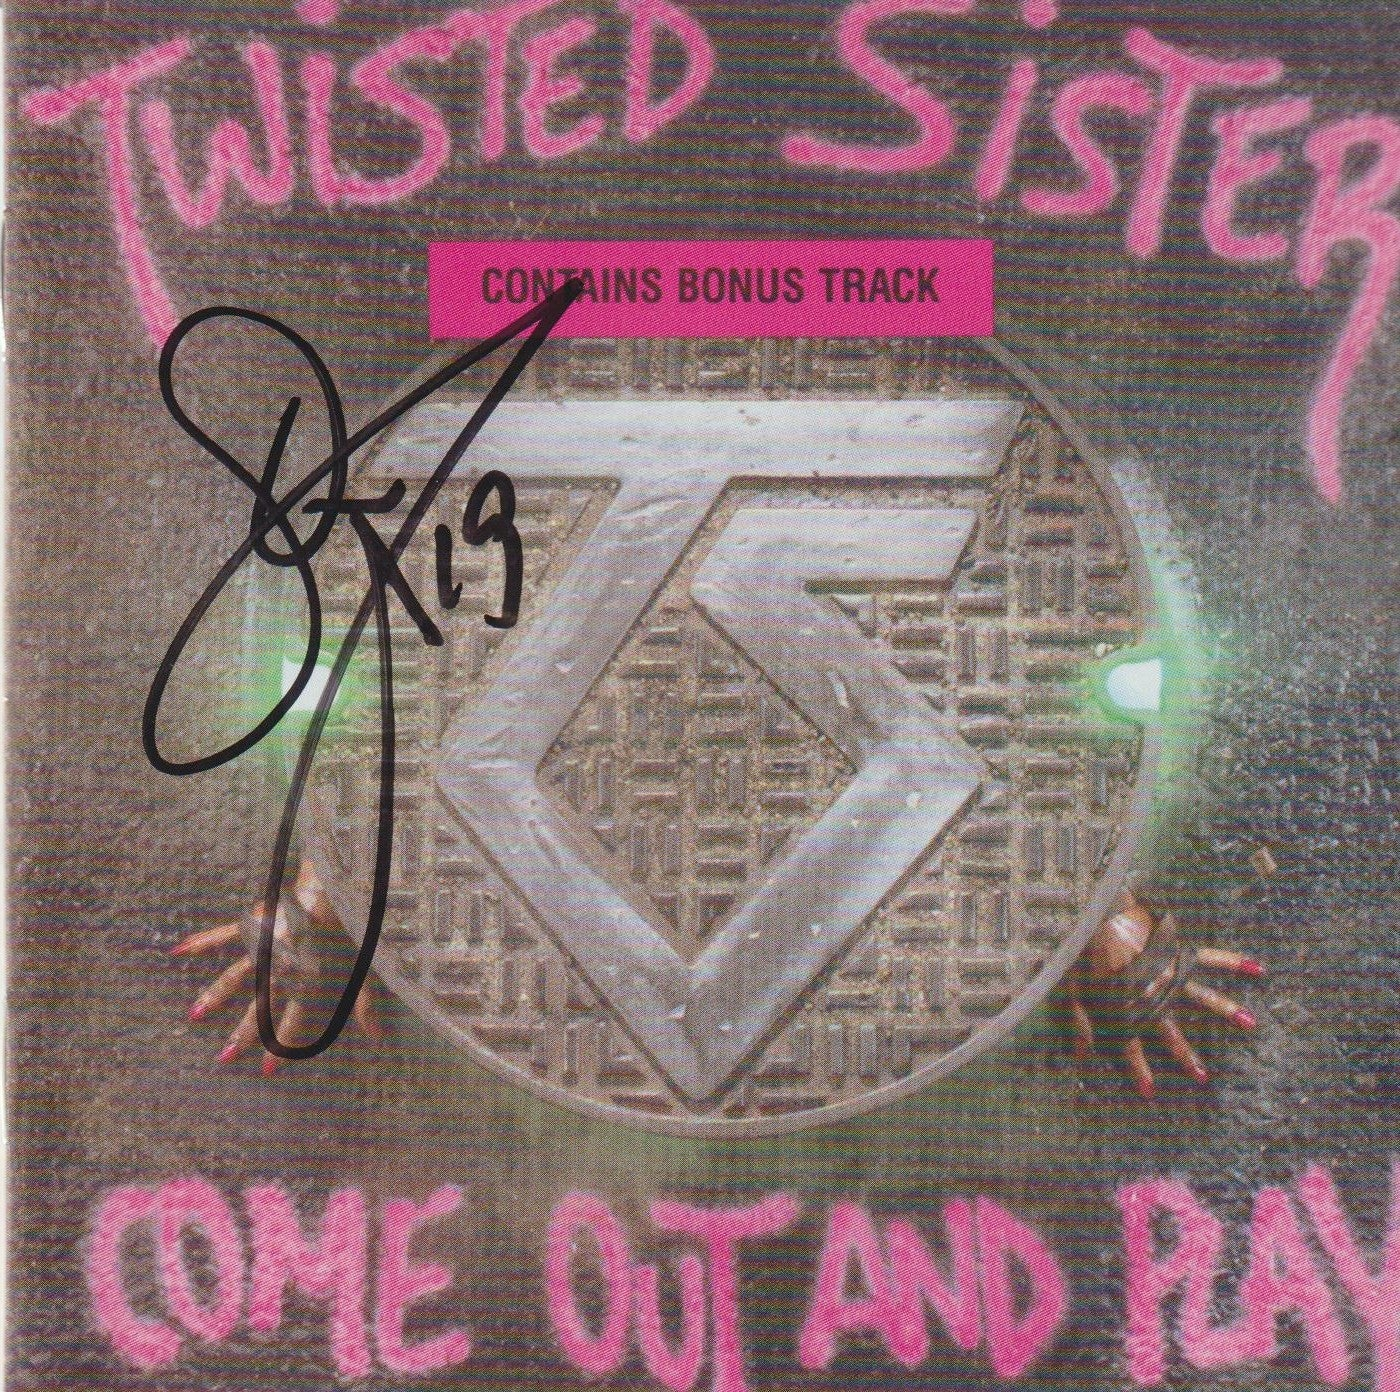 Image of TWISTED SISTER - Come Out And Play - CD Autographed